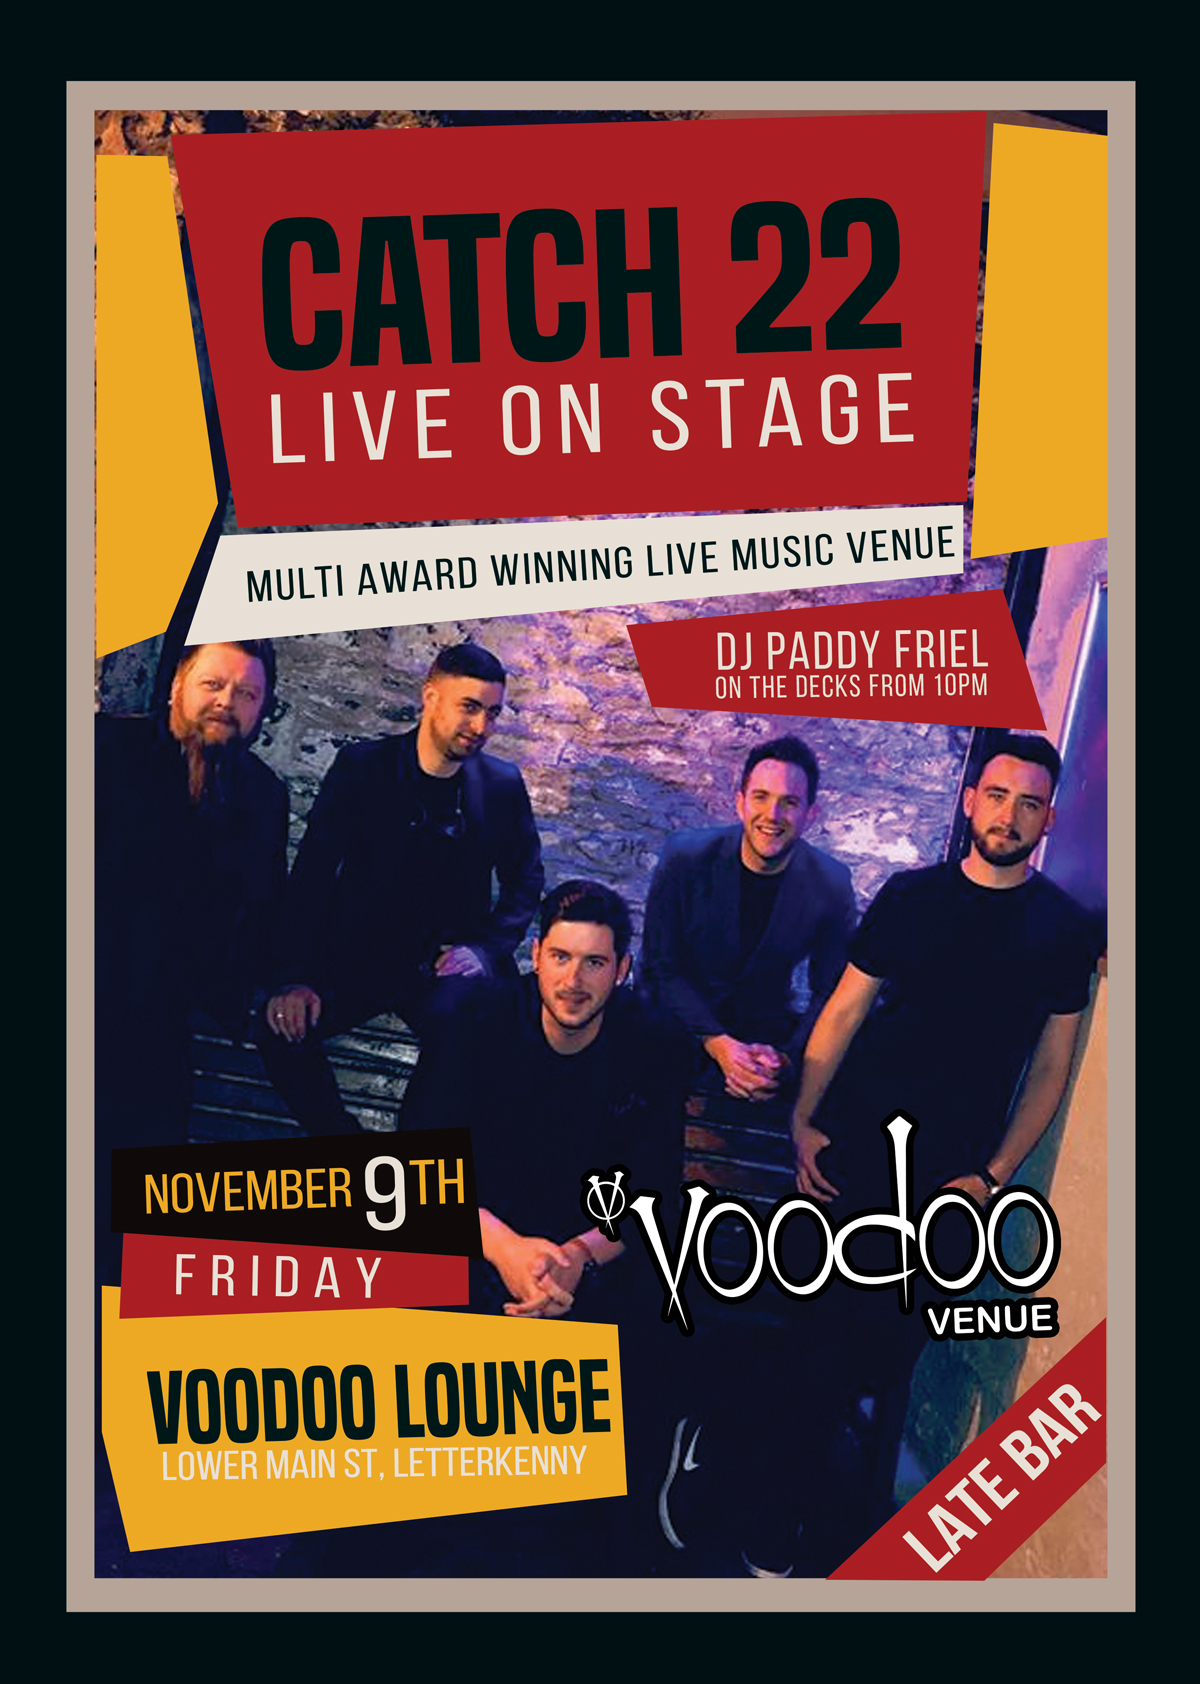 VOODOO-VENUE---catch-22-live-friday-nov-9-2018.jpg